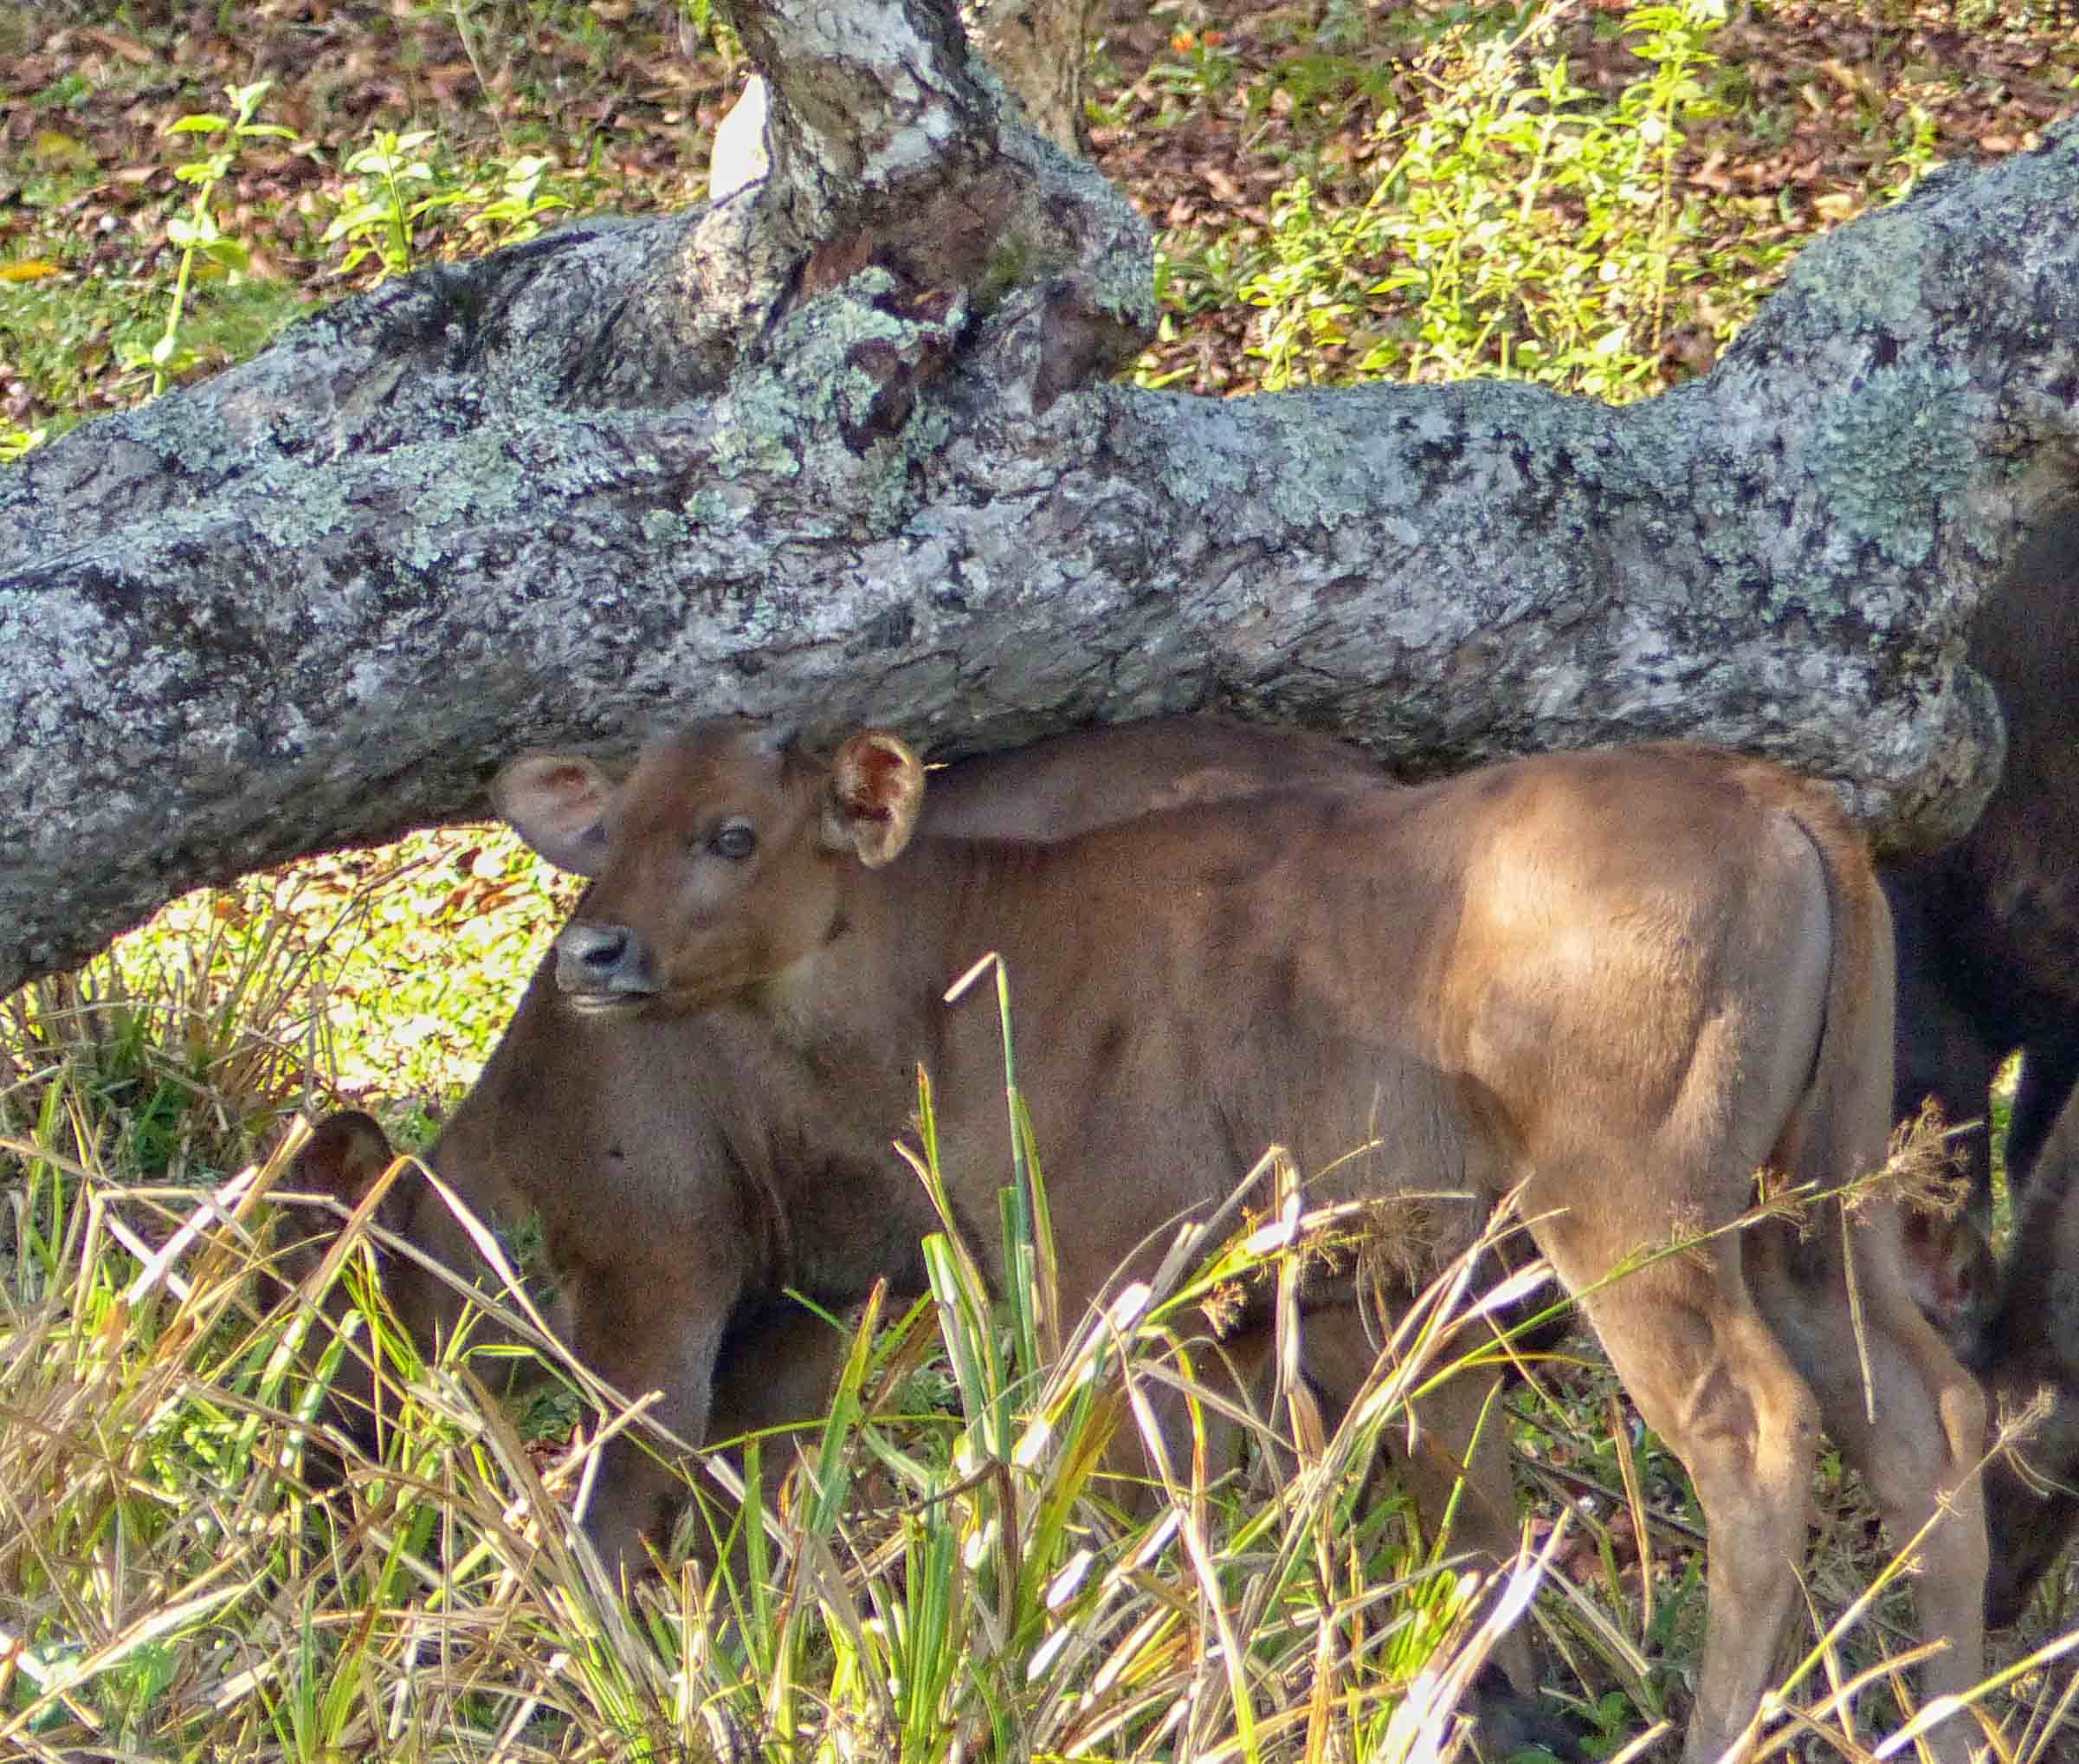 Two brown calves in the shade of a fallen tree trunk